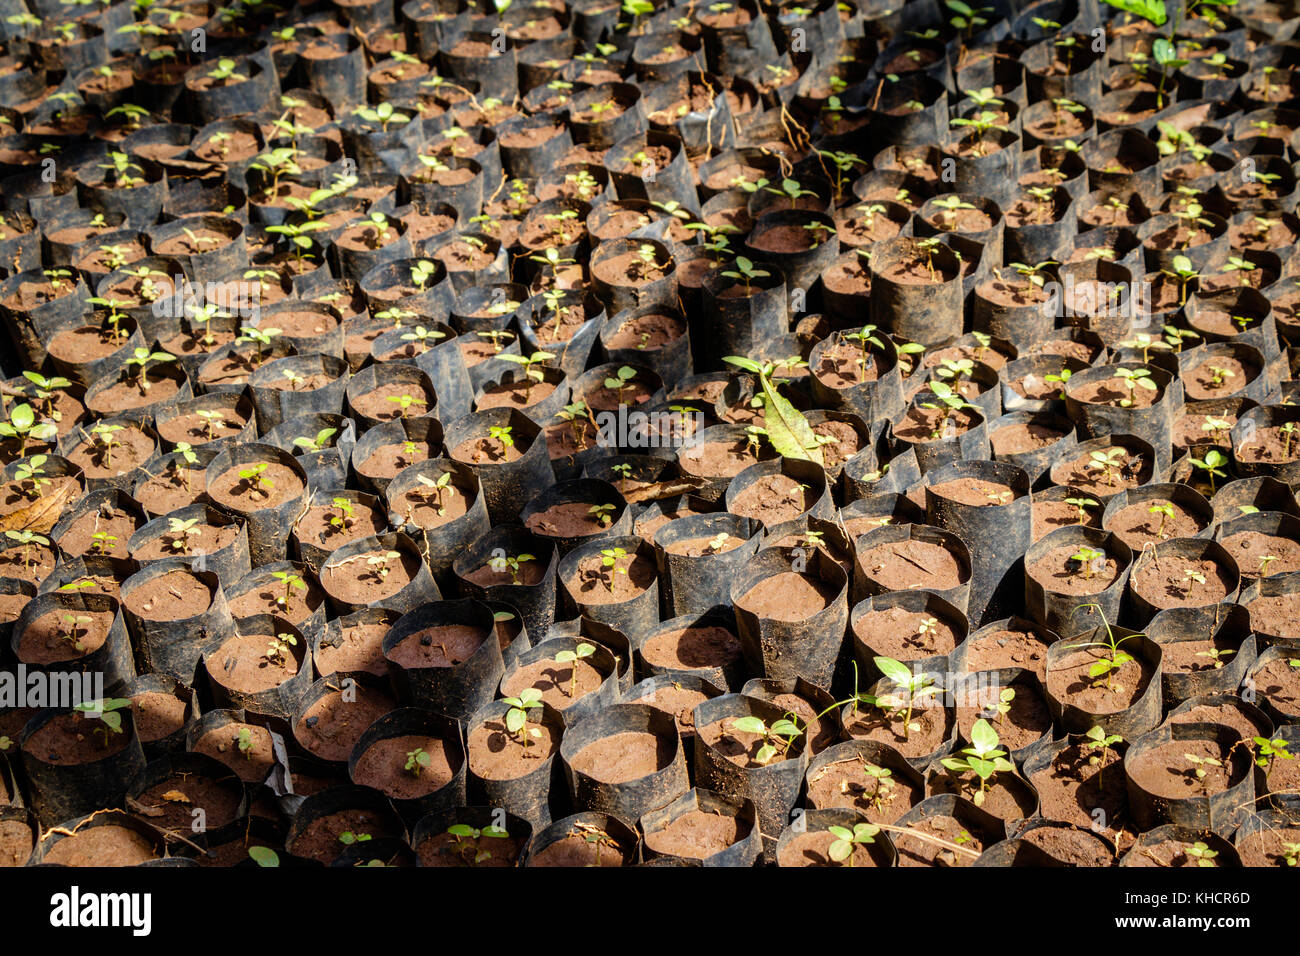 Tree planting Uganda style, many sprouts together - Stock Image